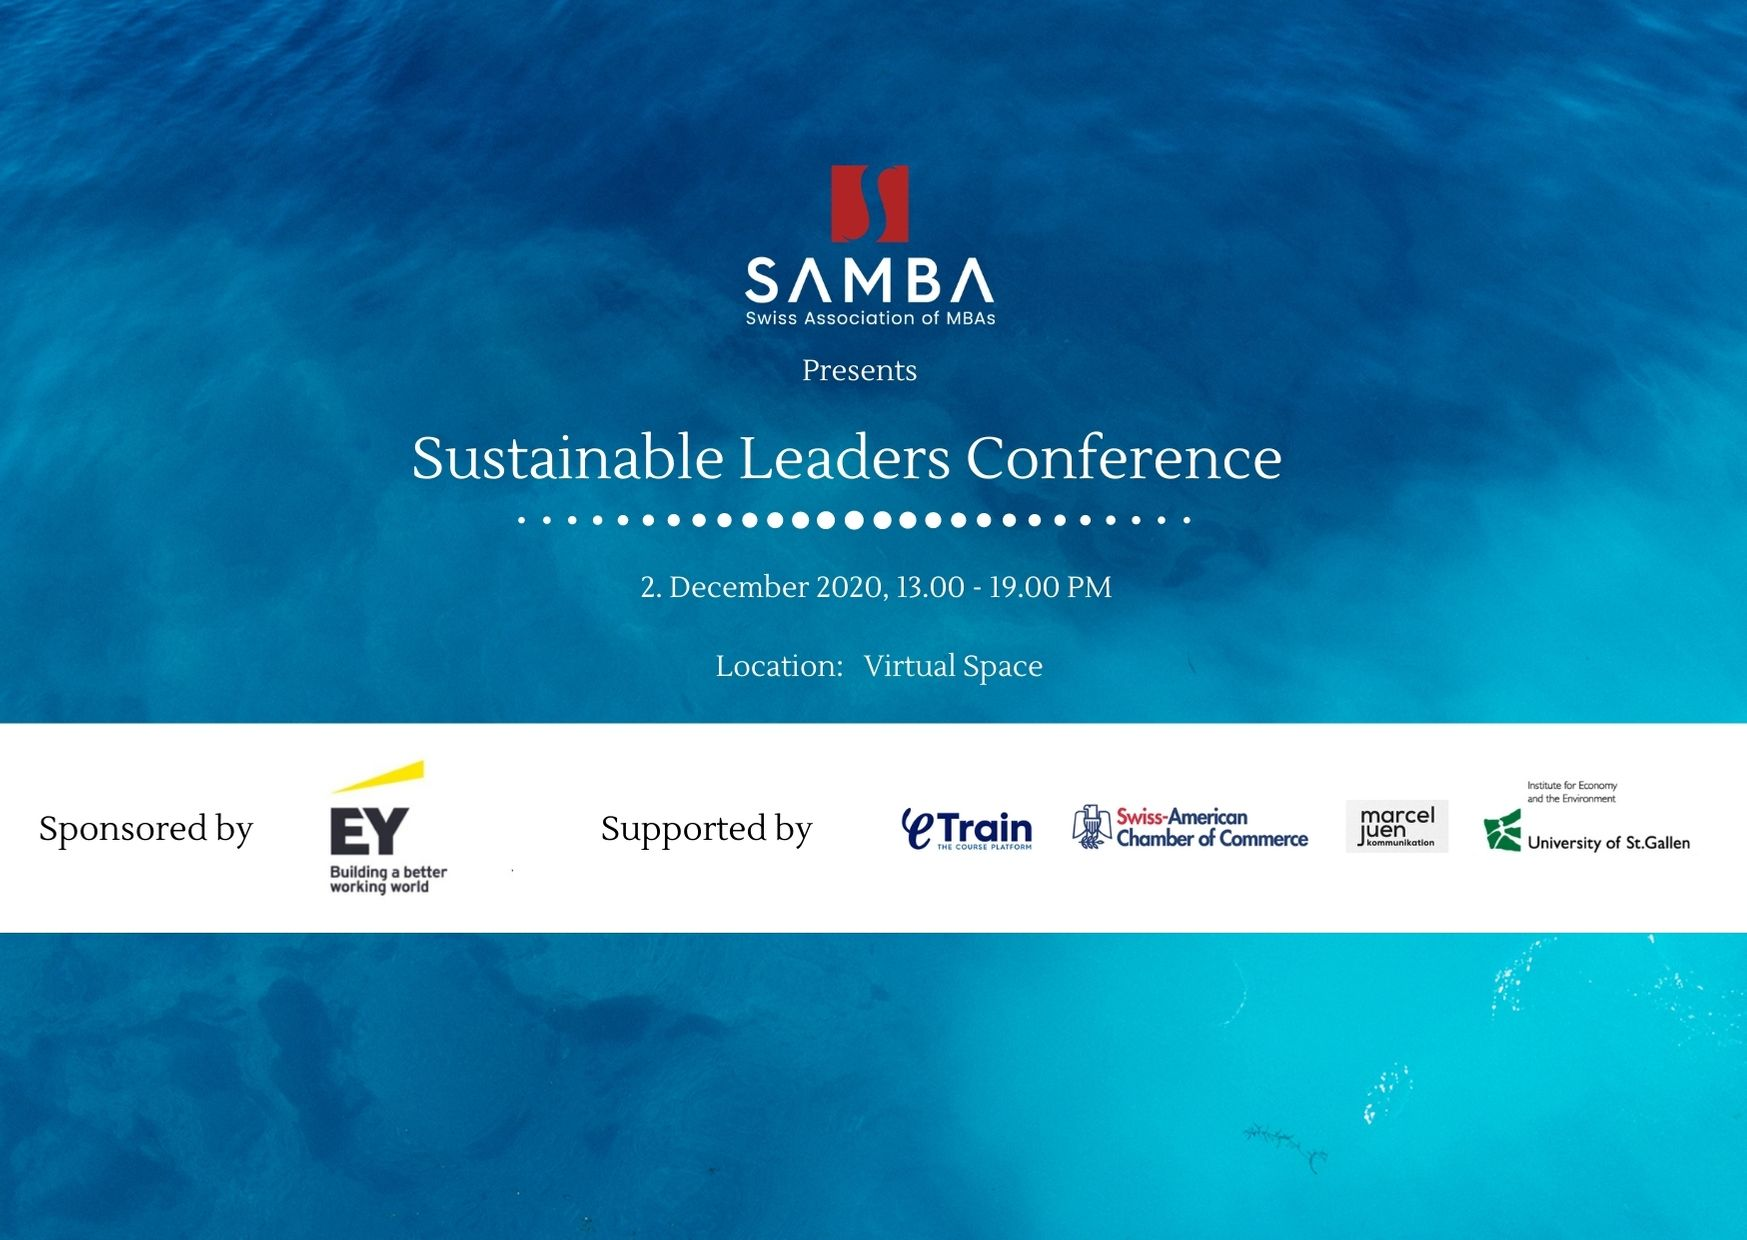 Sustainable Leaders Conference